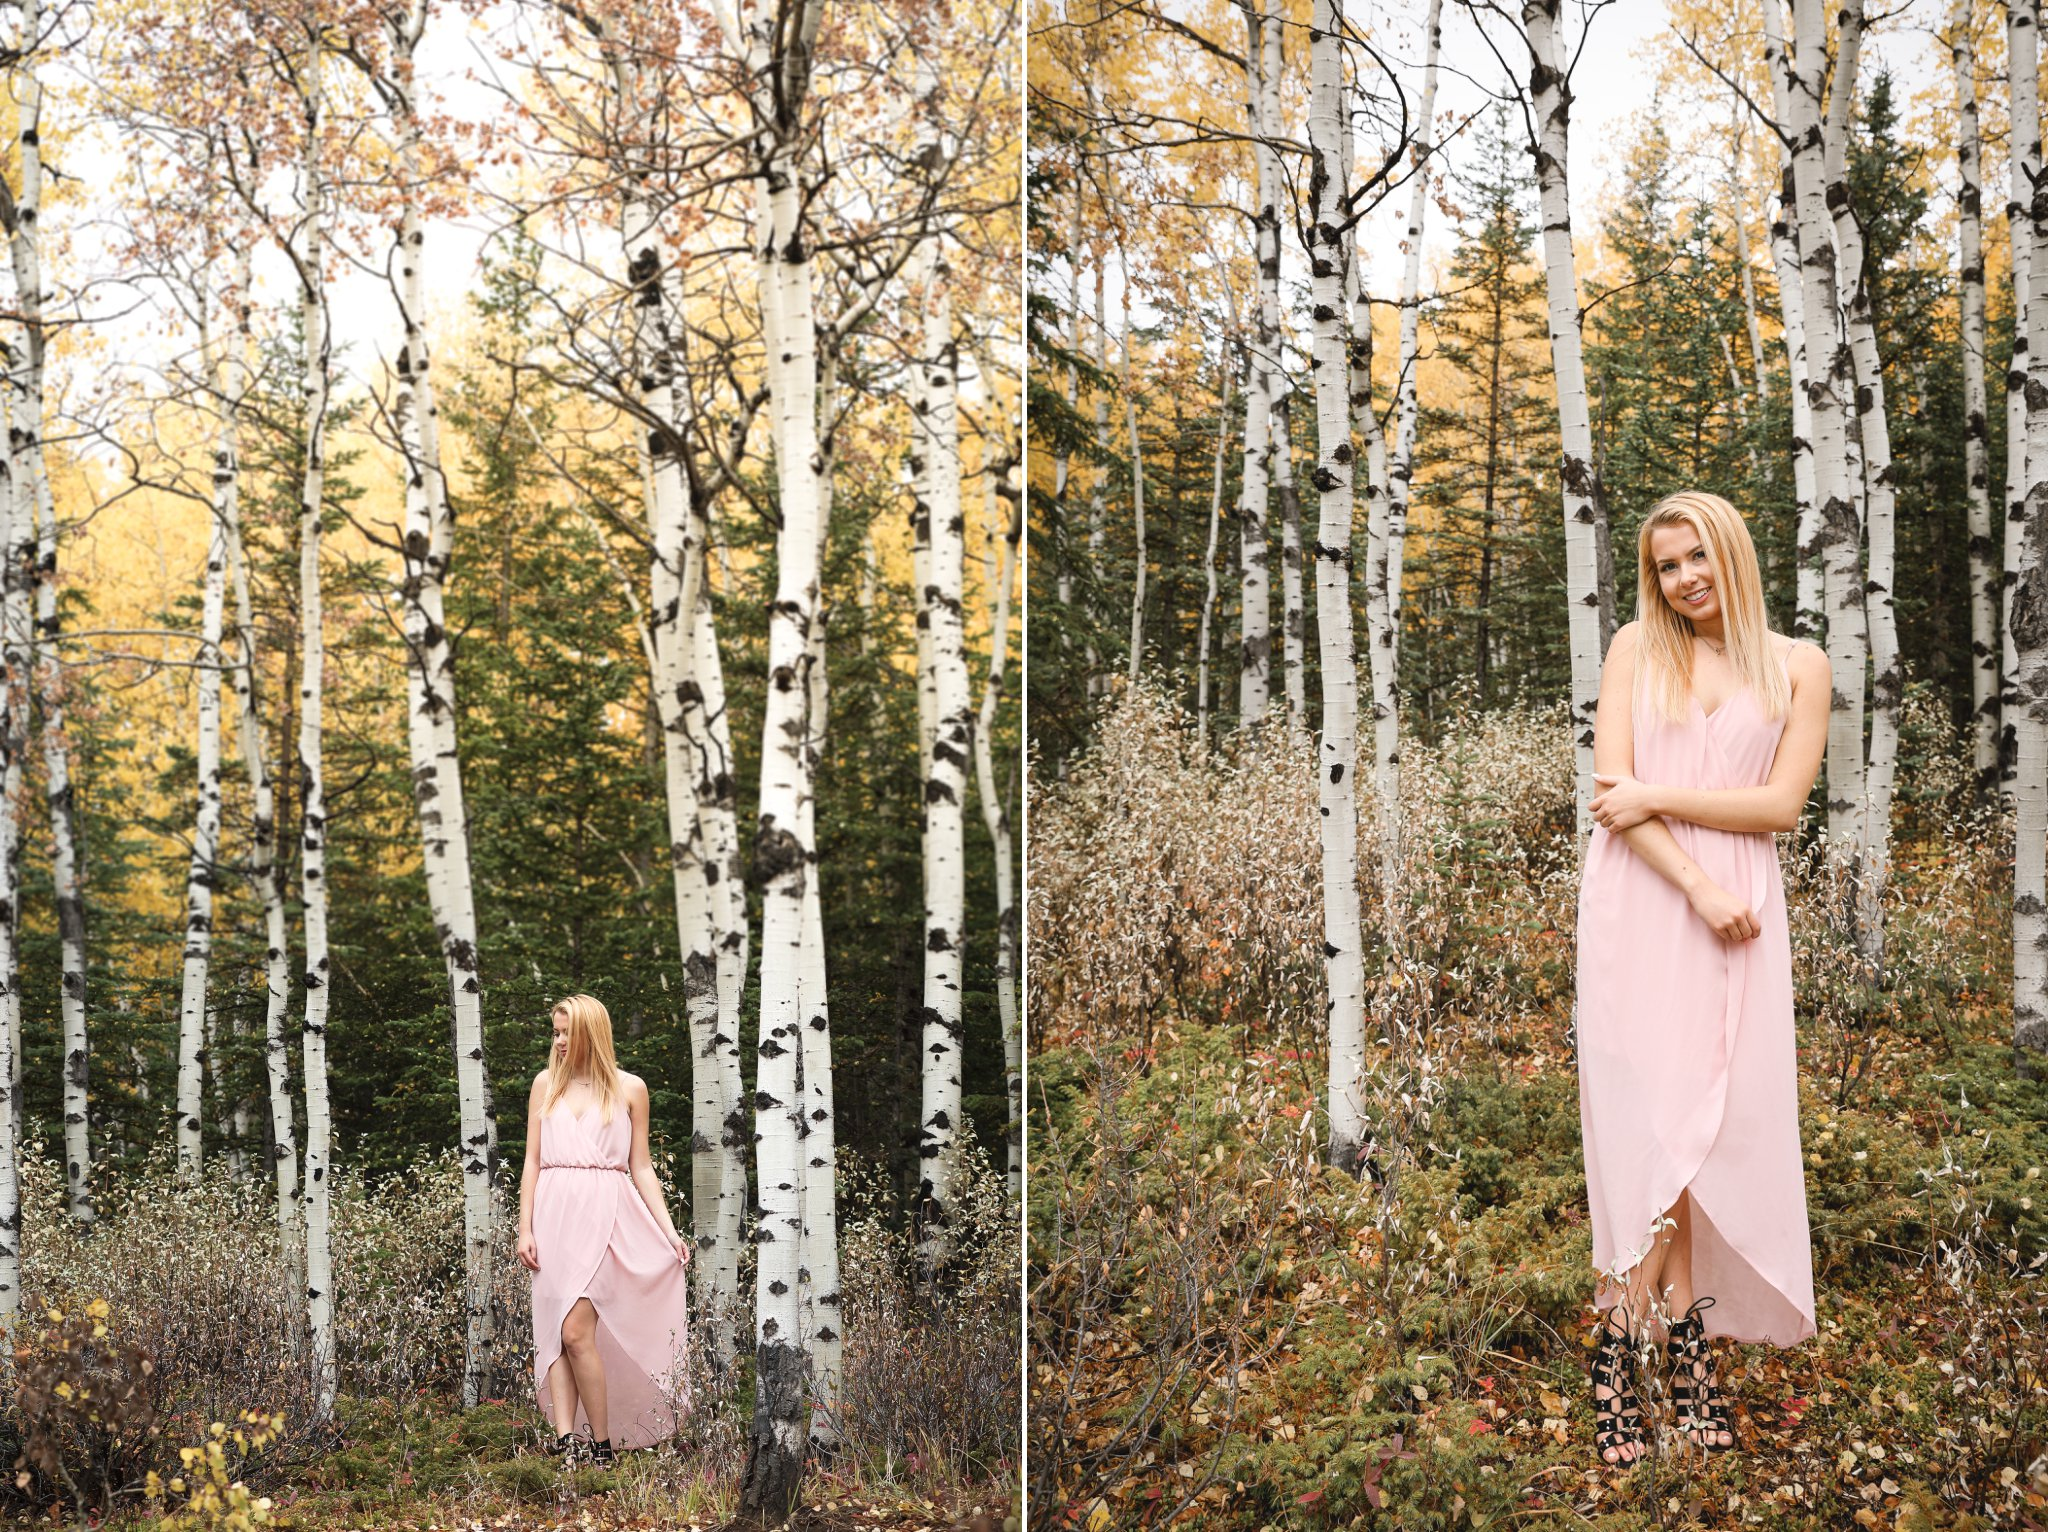 AshleyDaphnePhotography Calgary Photographer Wedding Family Senior Portraits Rocky Mountains Sheep River Falls Autumn Fall_0012.jpg